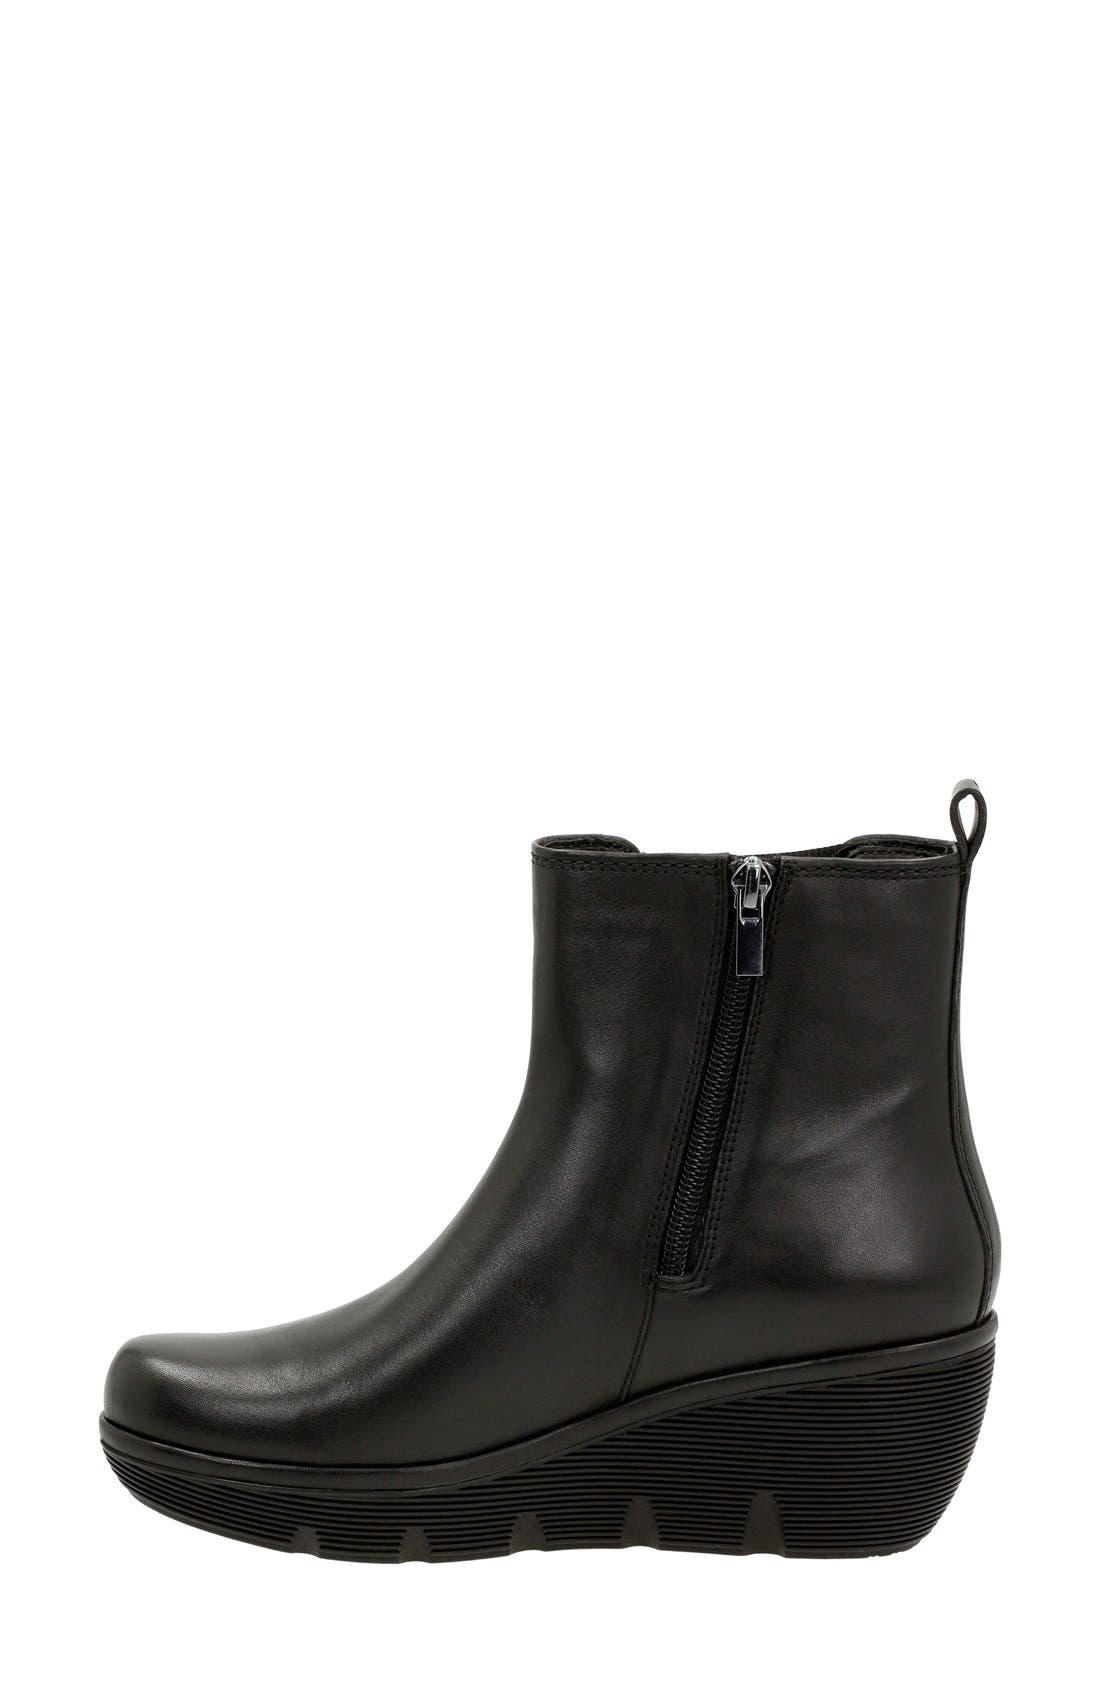 'Clarene Surf' Wedge Chelsea Boot,                             Alternate thumbnail 2, color,                             003